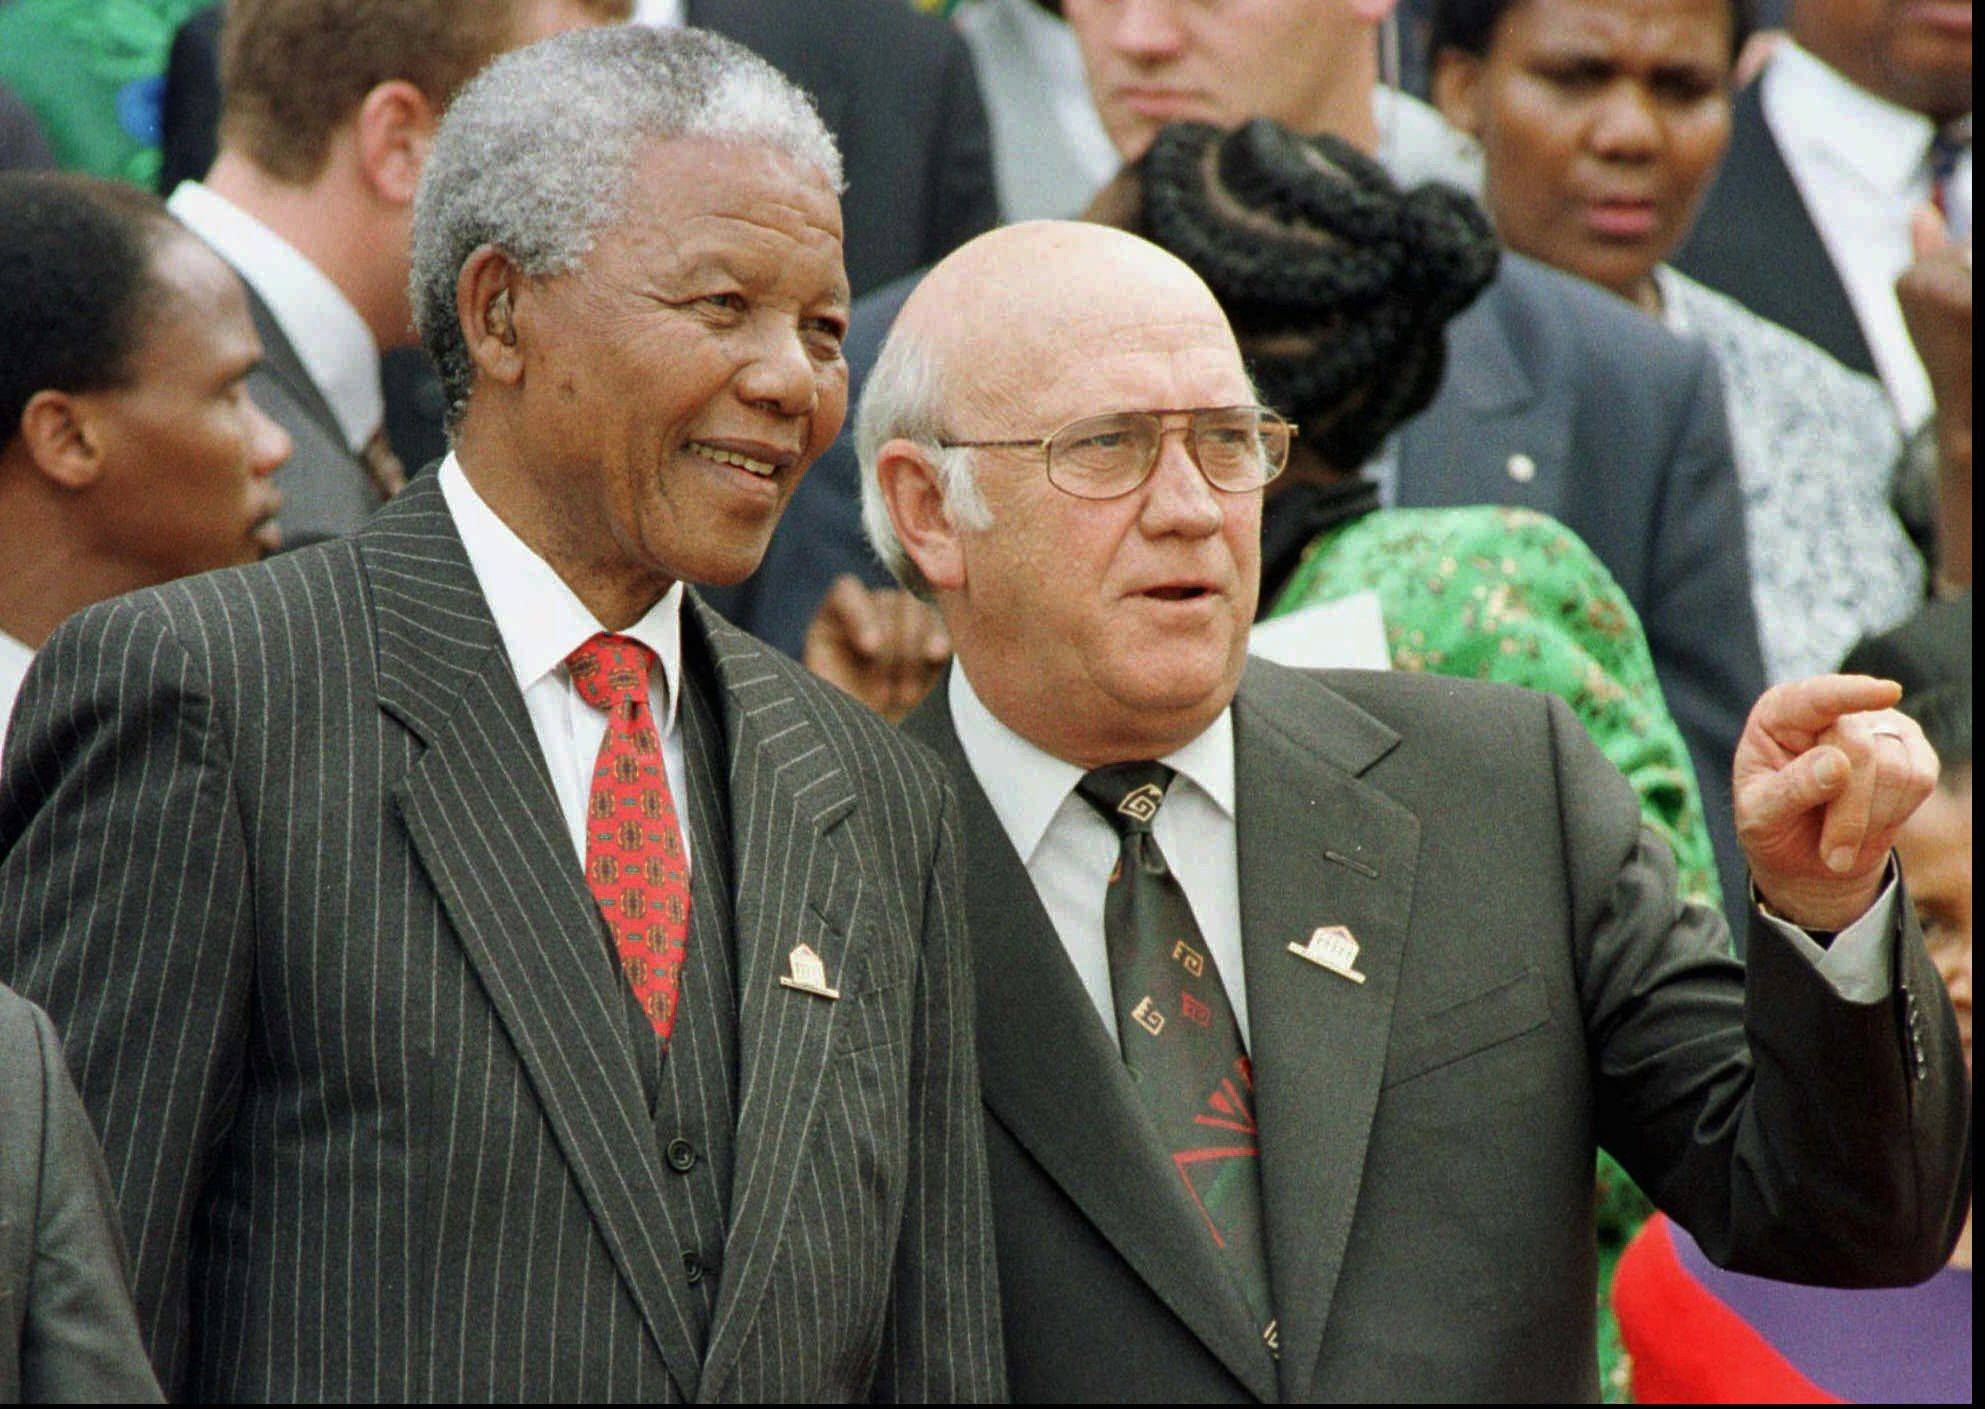 In this 1996 photo, South African President Nelson Mandela, left, and Deputy President F.W. de Klerk chat outside Parliament after the approval of South Africa�s new constitution. de Klerk, the last leader of the apartheid era and a co-recipient of the 1993 Nobel Peace Prize with Nelson Mandela, has suffered dizziness and will be fitted with a pacemaker, Tuesday June 2, 2013, to help his heart function.